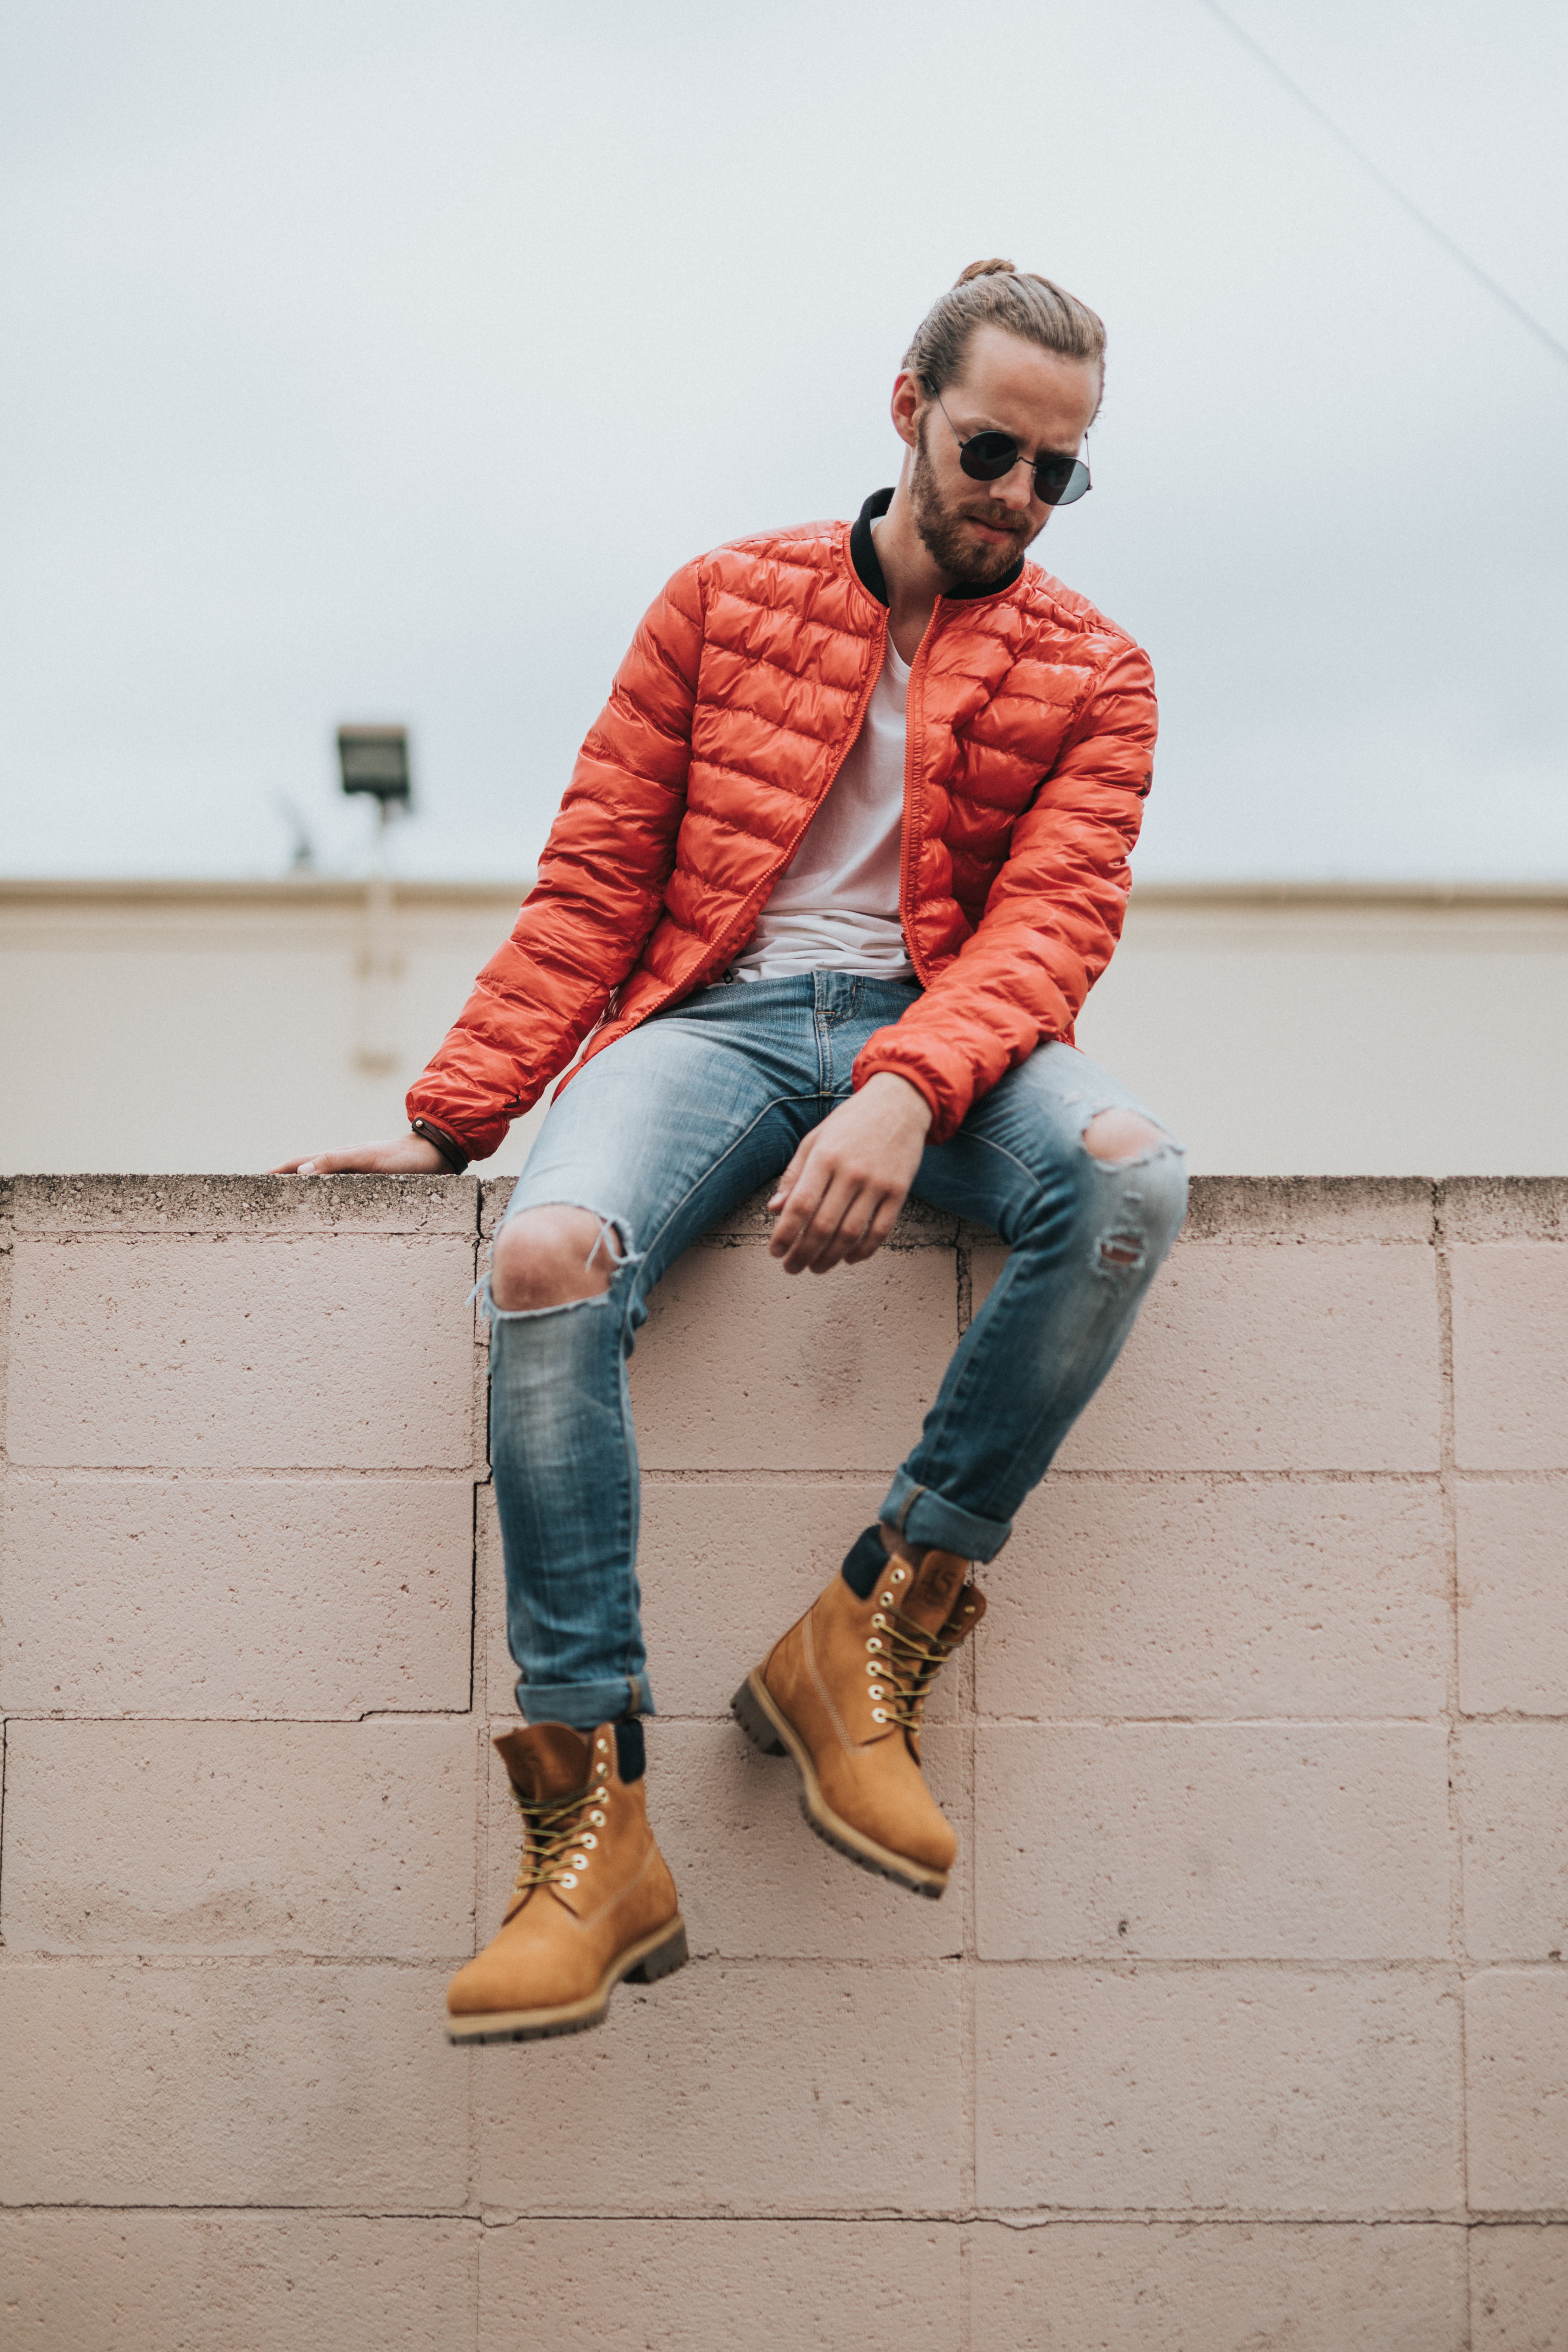 A man poses on a wall wearing a red jacket, jeans, and Timberland boots